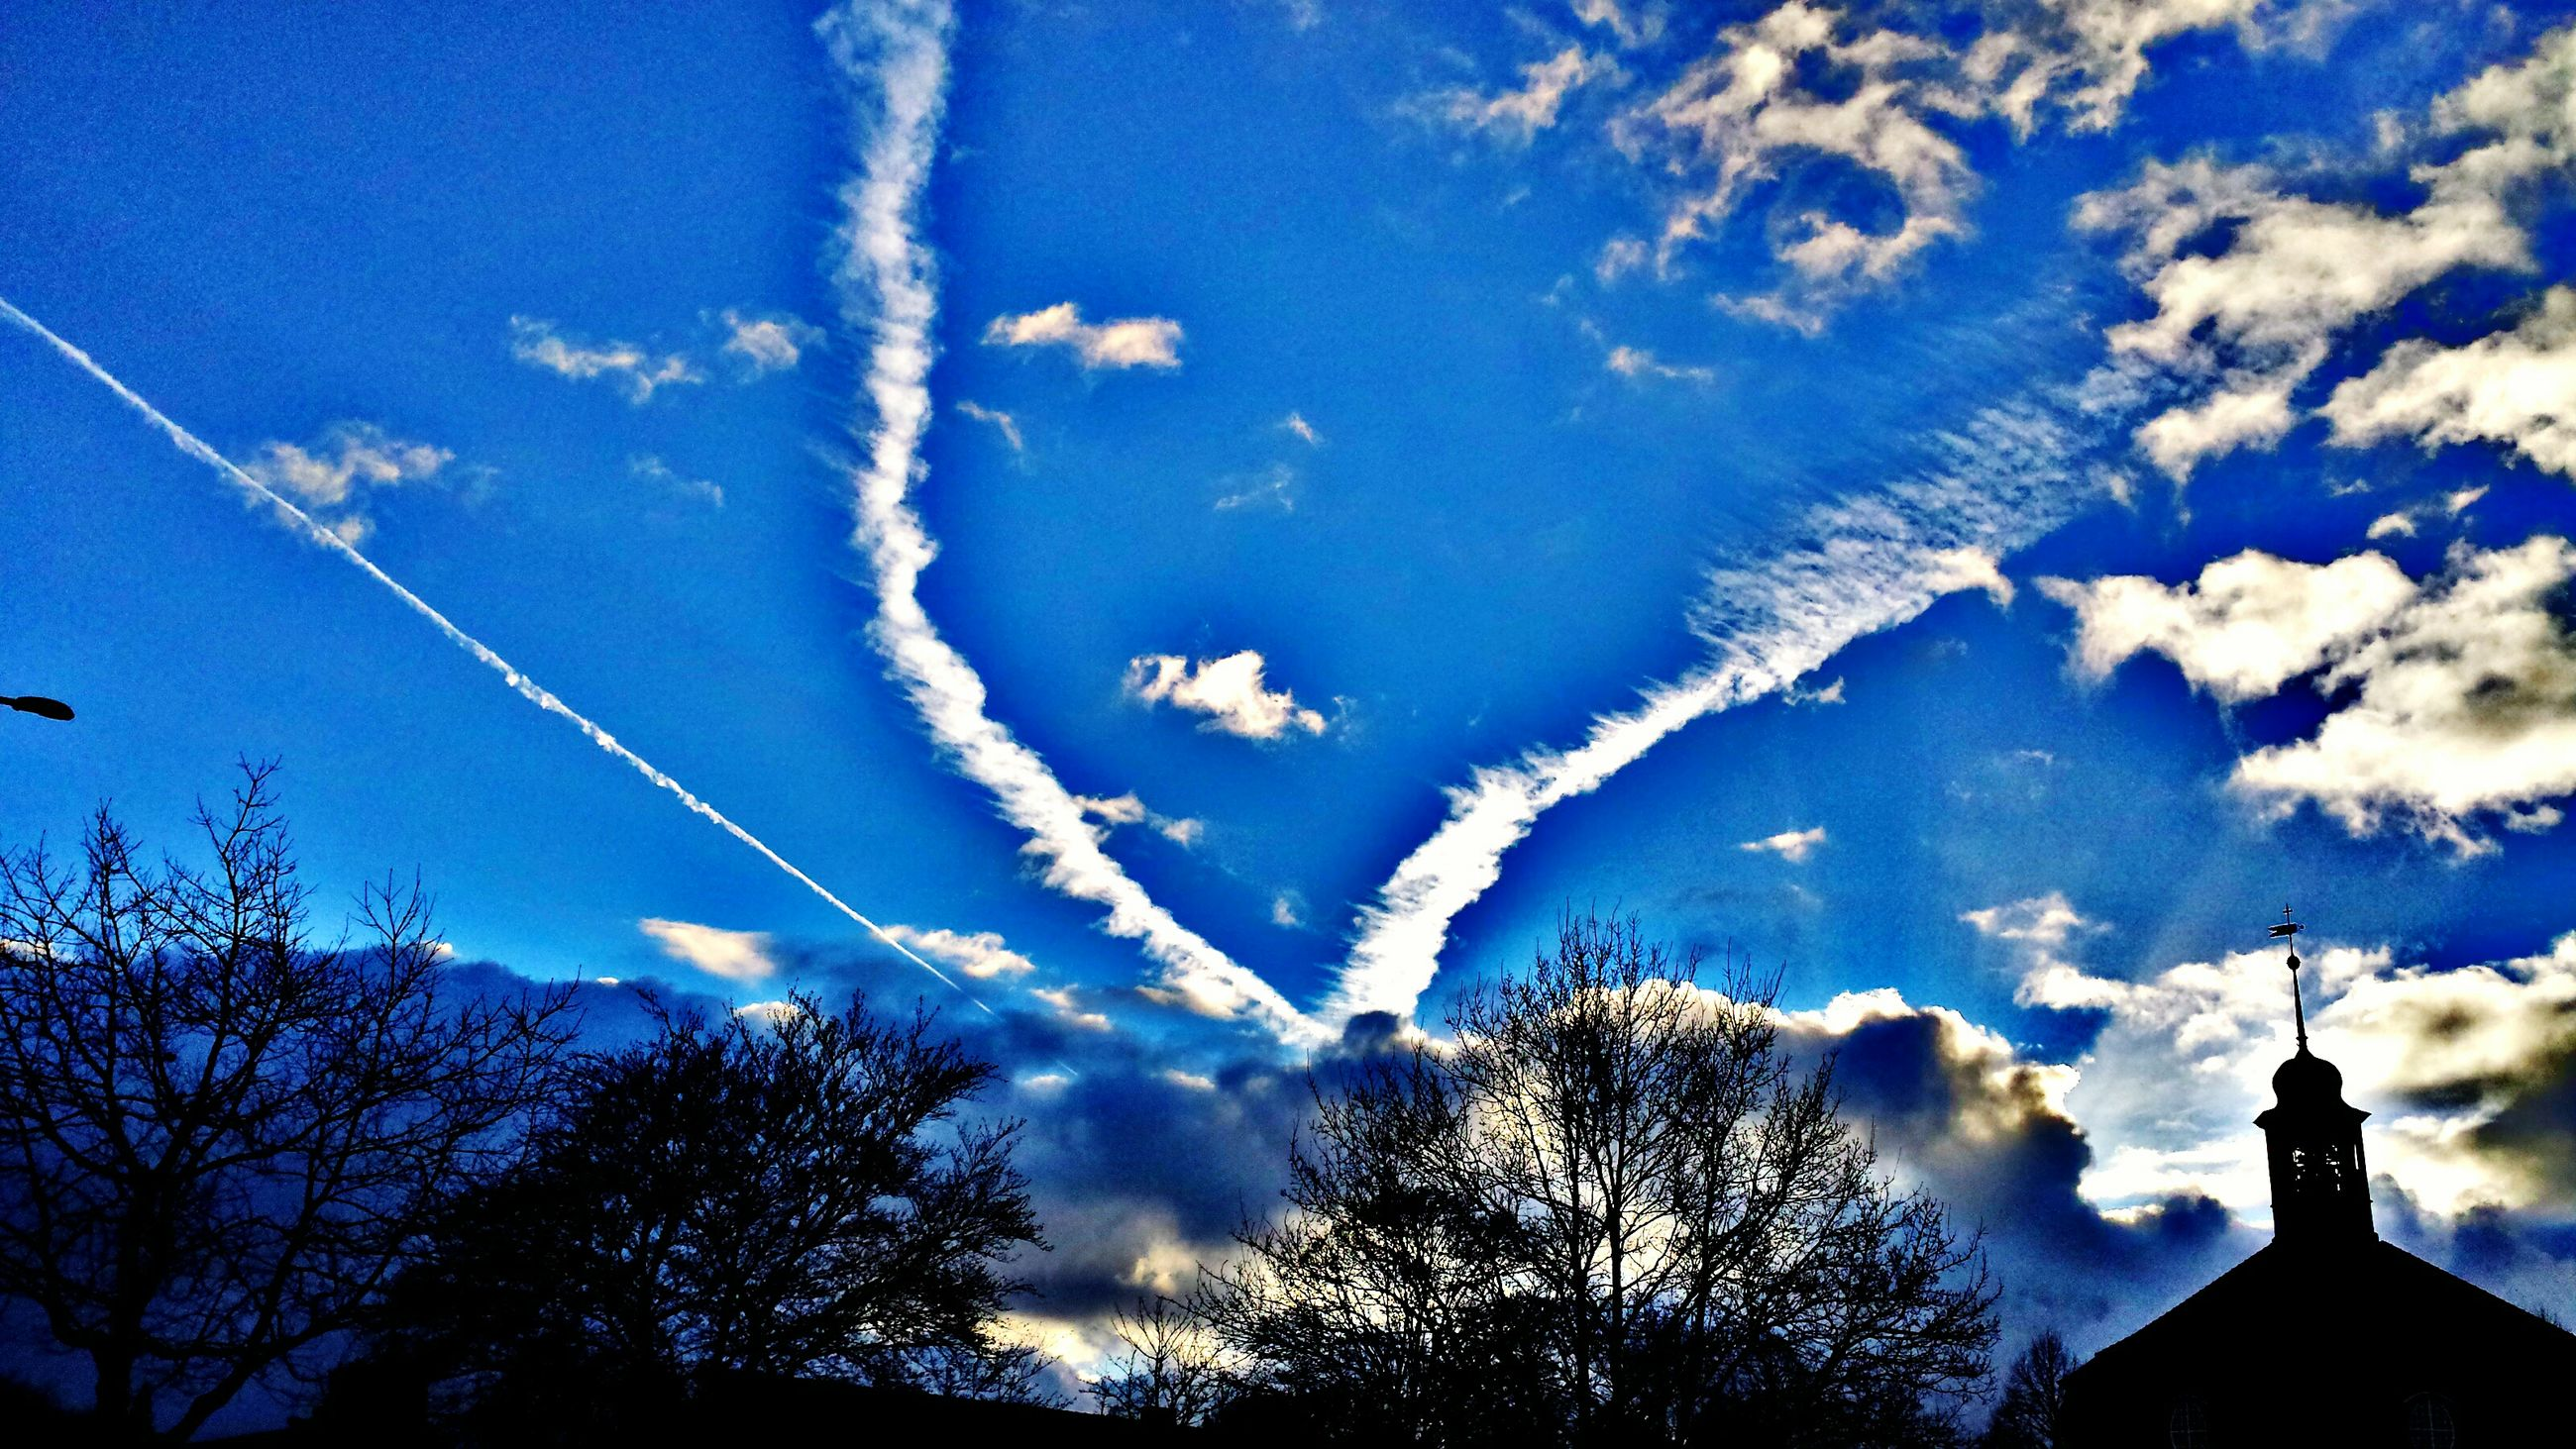 sky, low angle view, tree, vapor trail, nature, scenics, beauty in nature, no people, outdoors, day, contrail